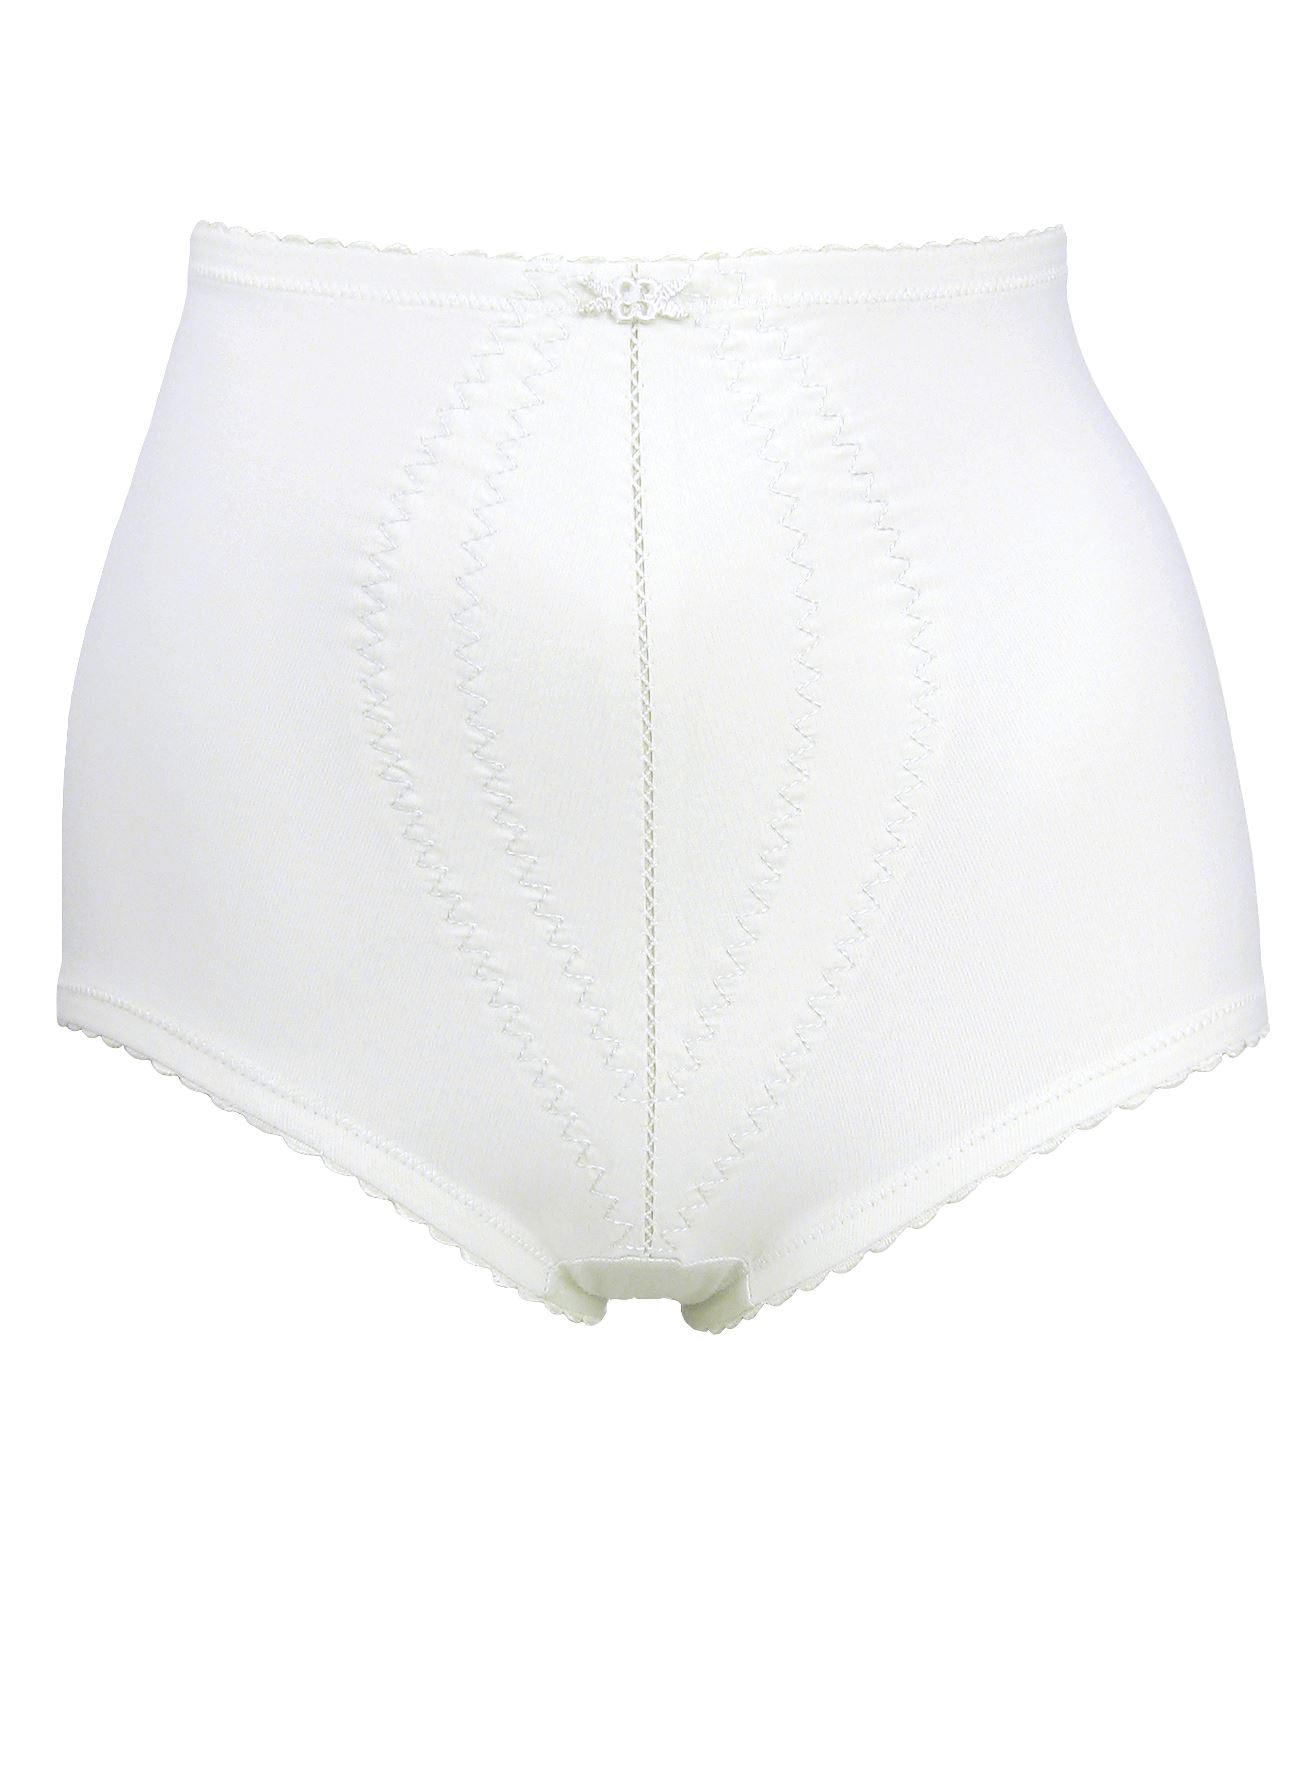 d73f0a3198 Playtex I Can t Believe It s A Girdle Brief P2522 Beige or White